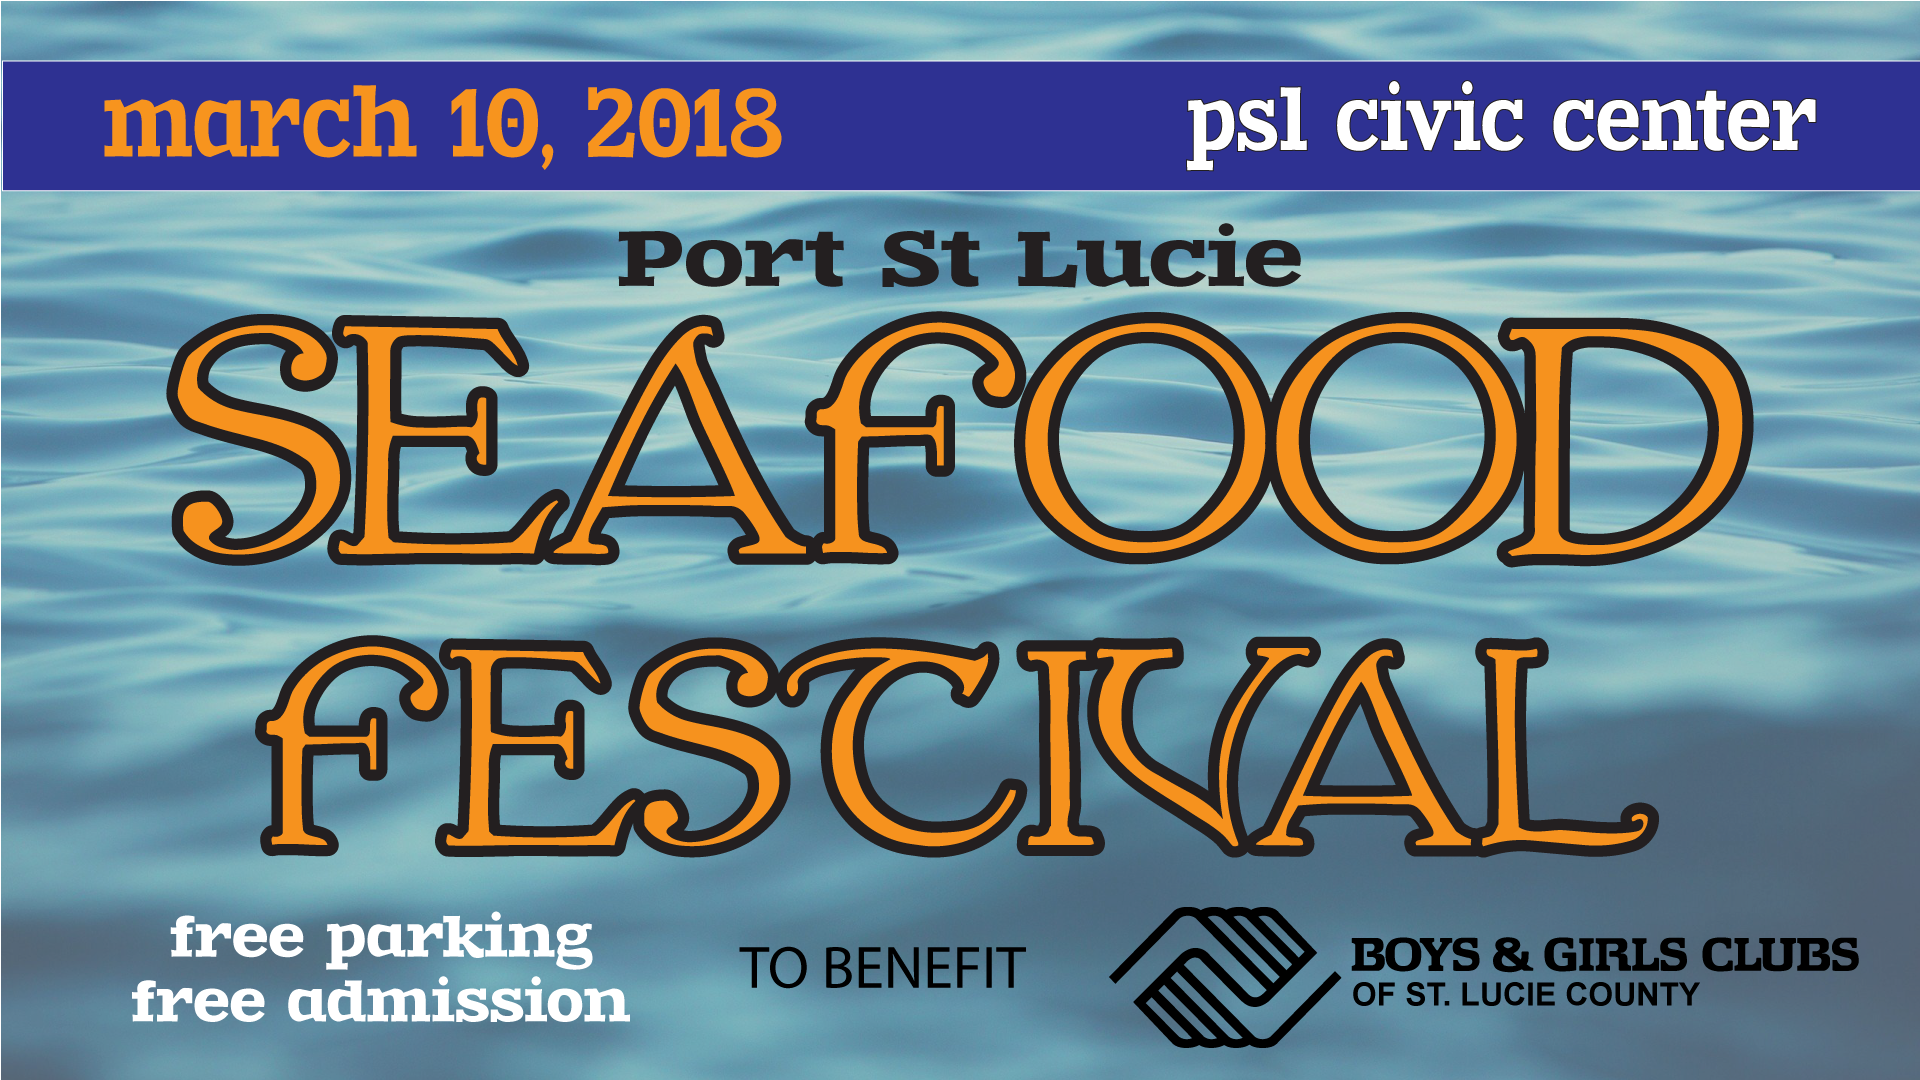 c64cf4e5-a3b2-439e-8594-5b83ac5e96be-your_deal-seafood-fest-FB-event-photo.png